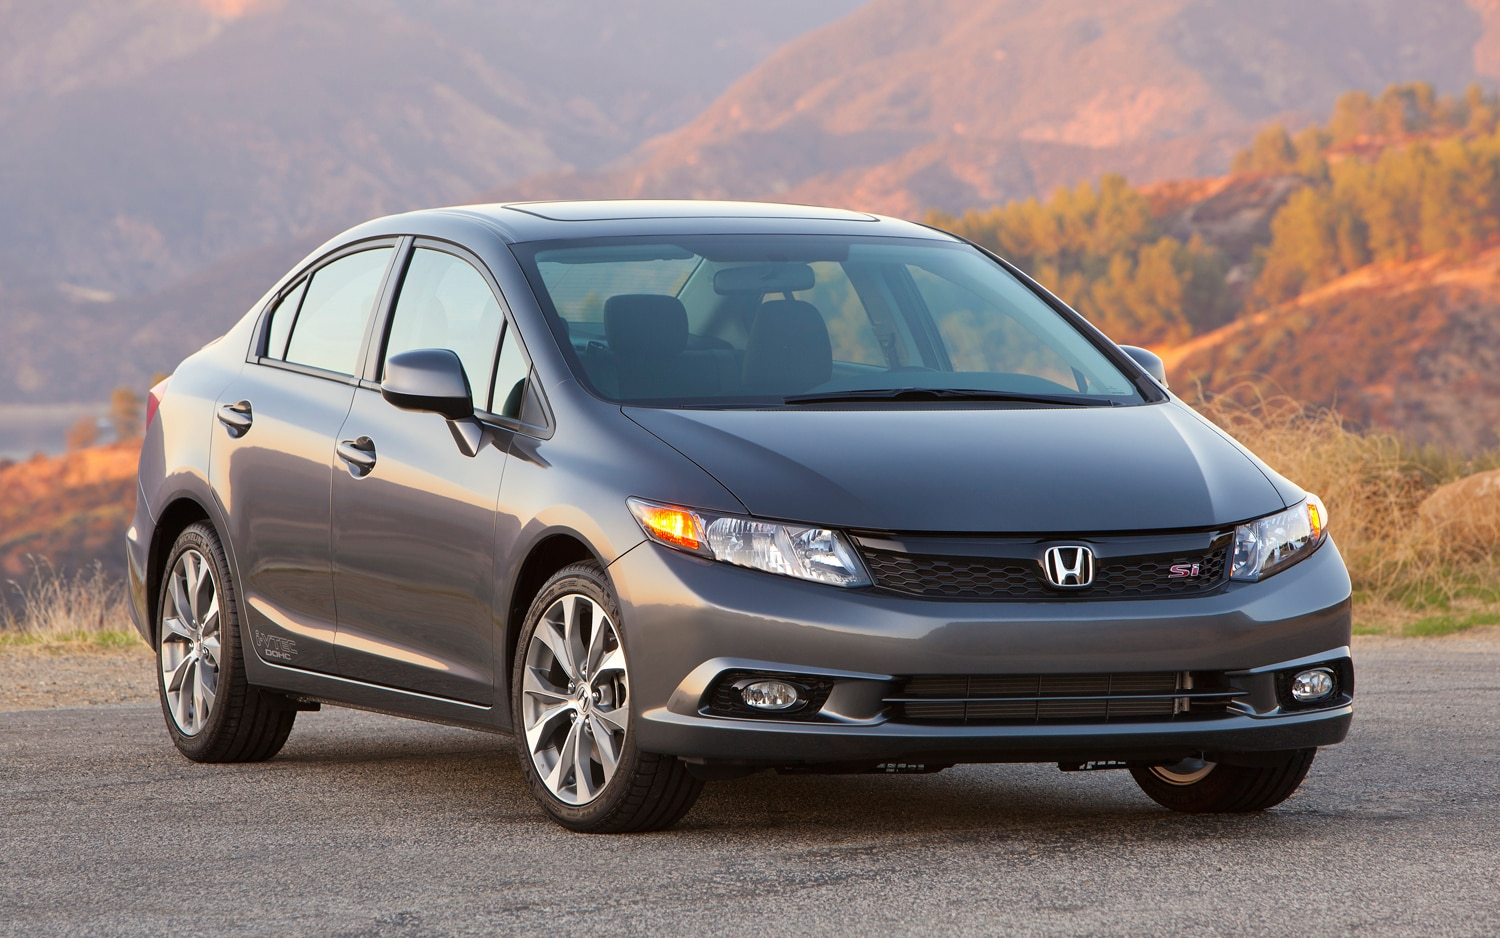 2012 Honda Civic Si Sedan Right Front 11